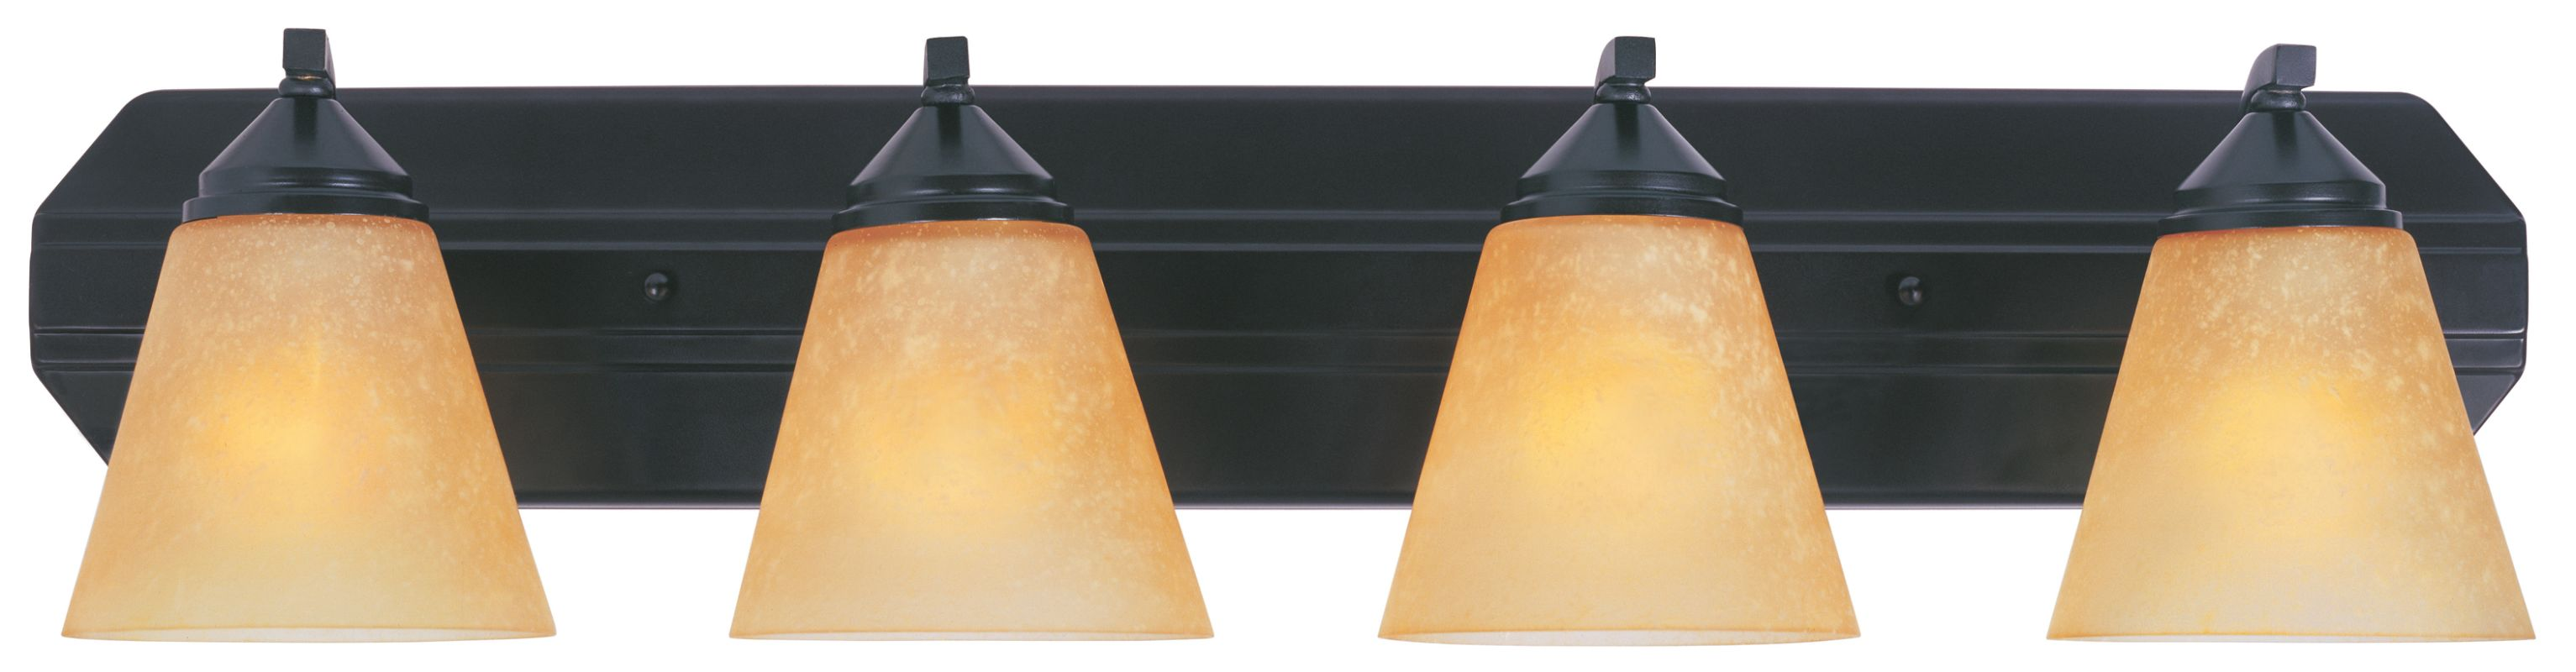 Designers Fountain 6604 400 Watt Four Light Bathroom Fixture from the